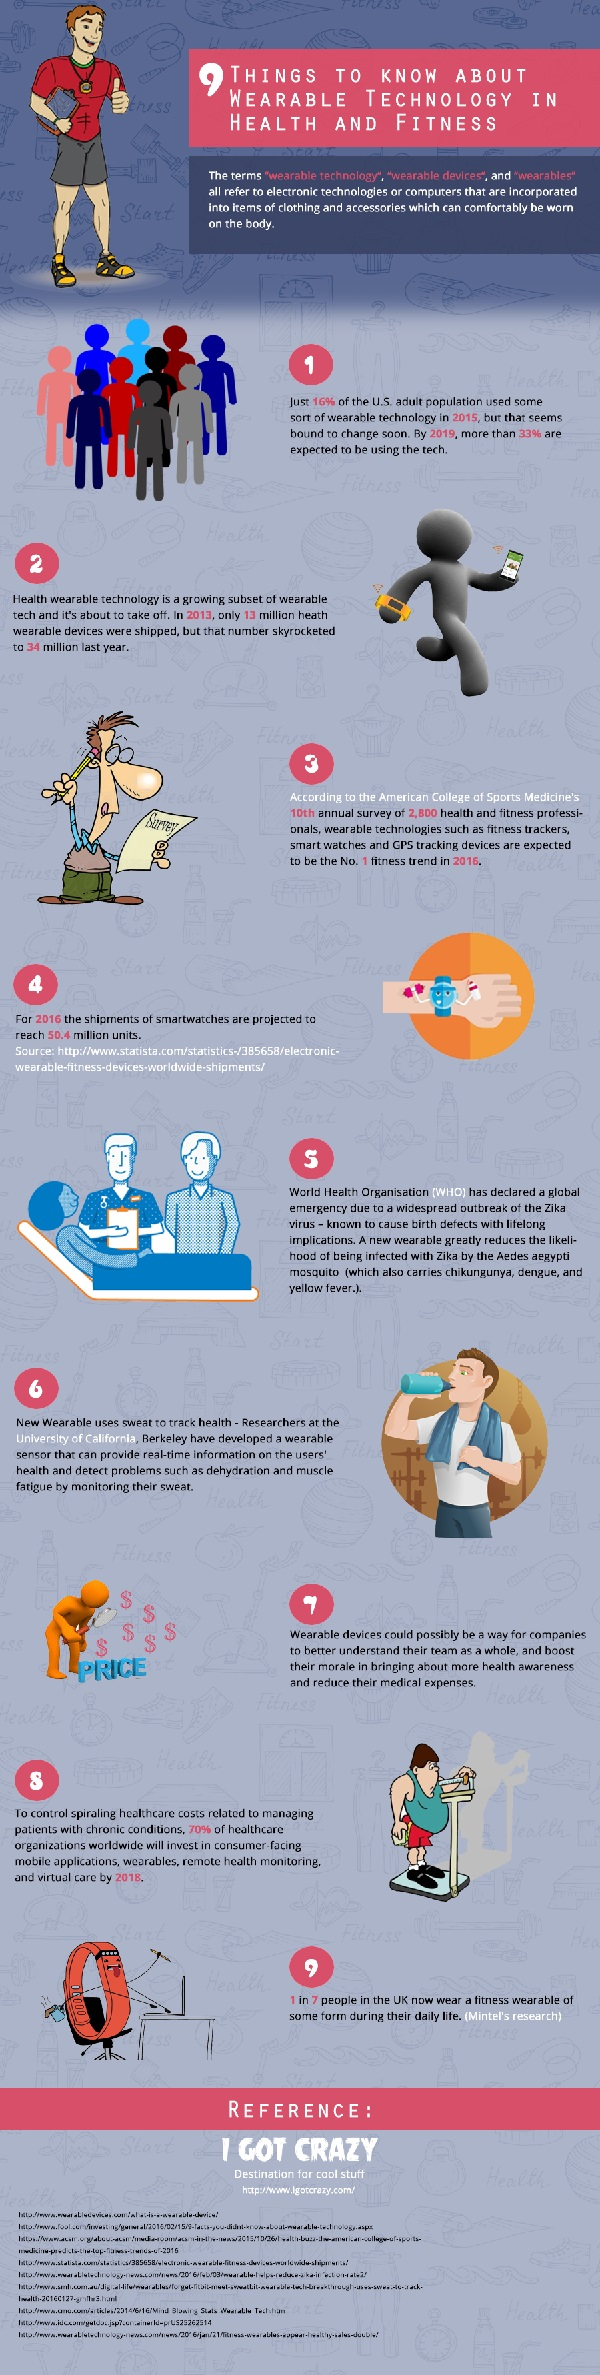 Wearable Tech In Health And Fitness Infographic